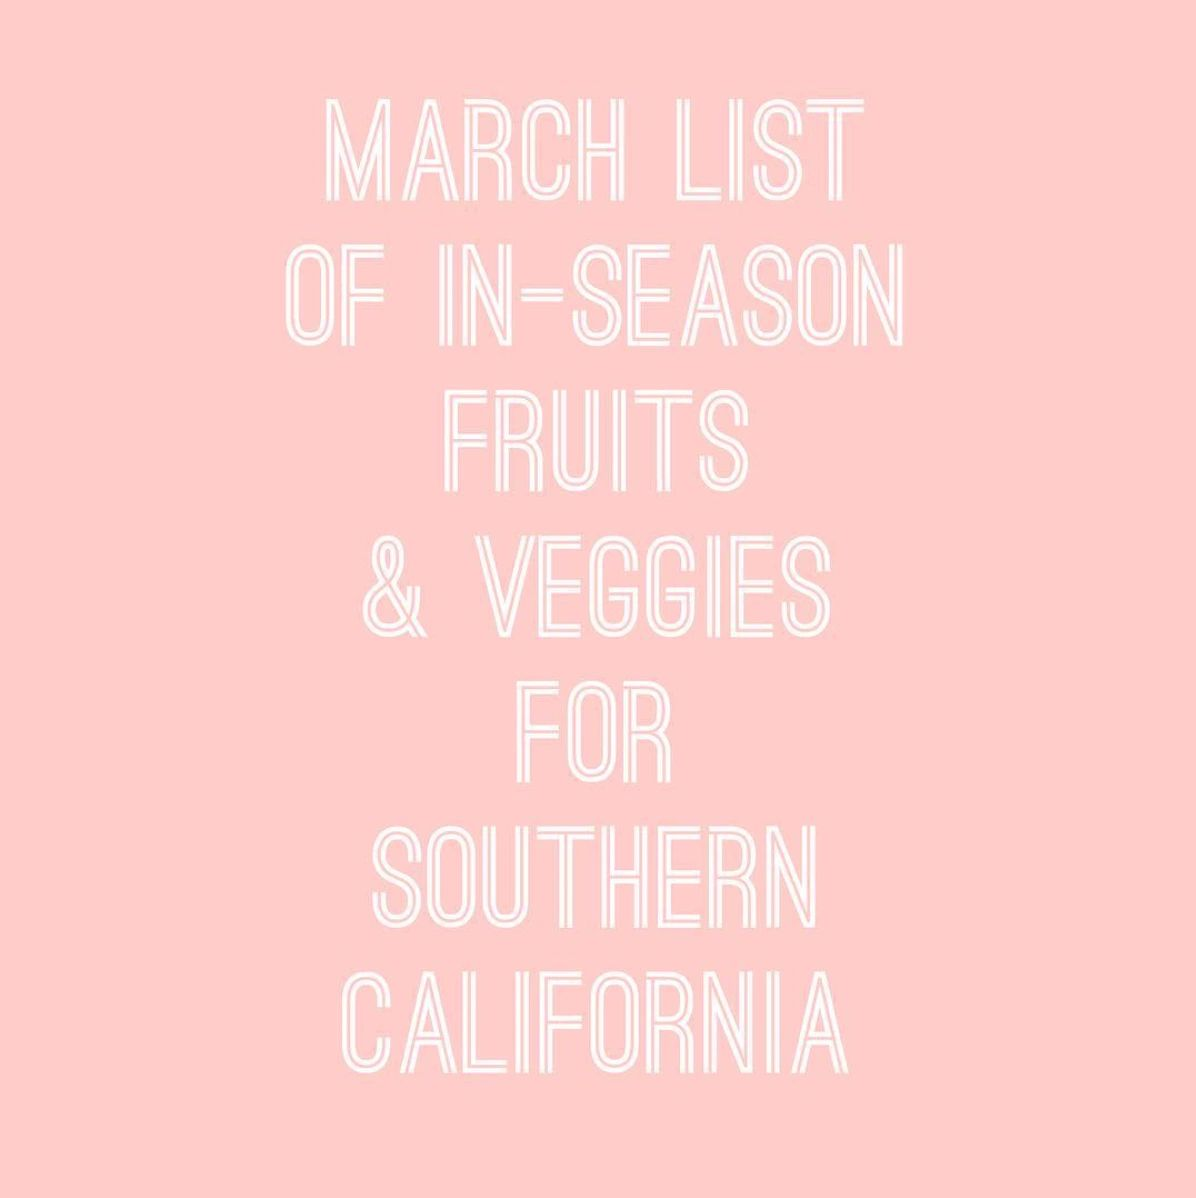 In- Season Fruits and Veggies for March